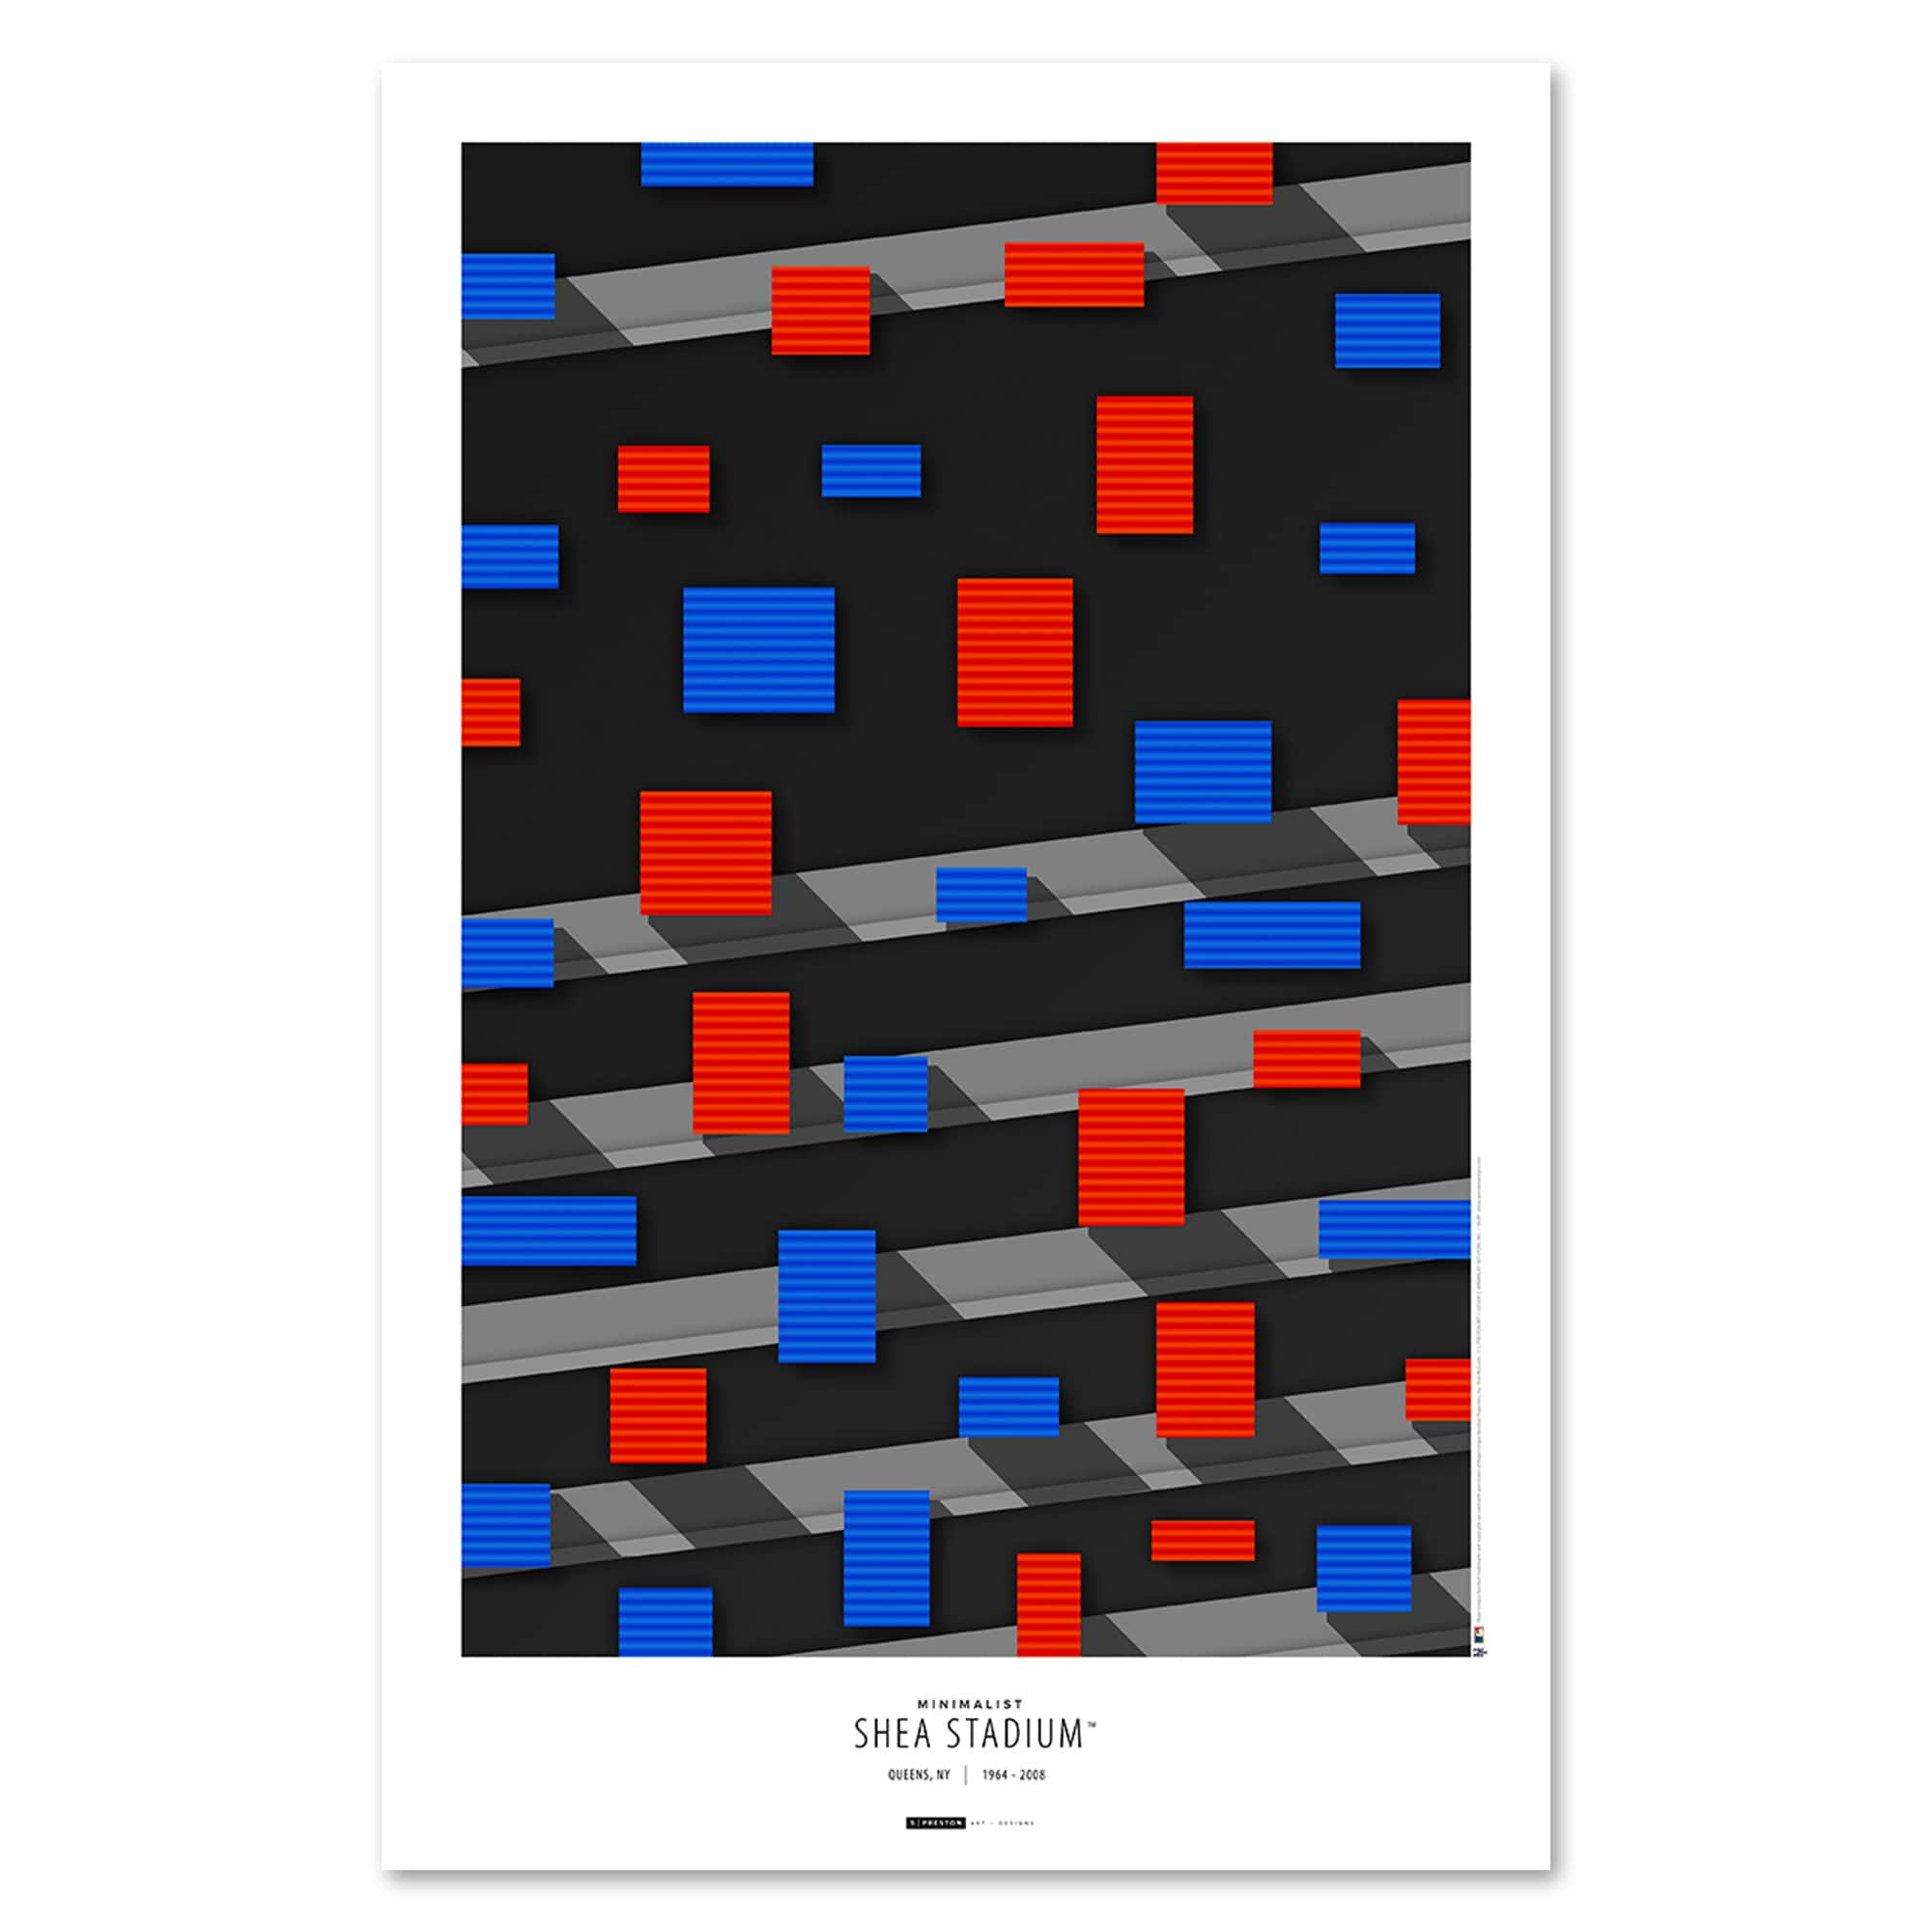 "New York Mets 11"" x 17"" Minimalist Shea Stadium Wall Art"